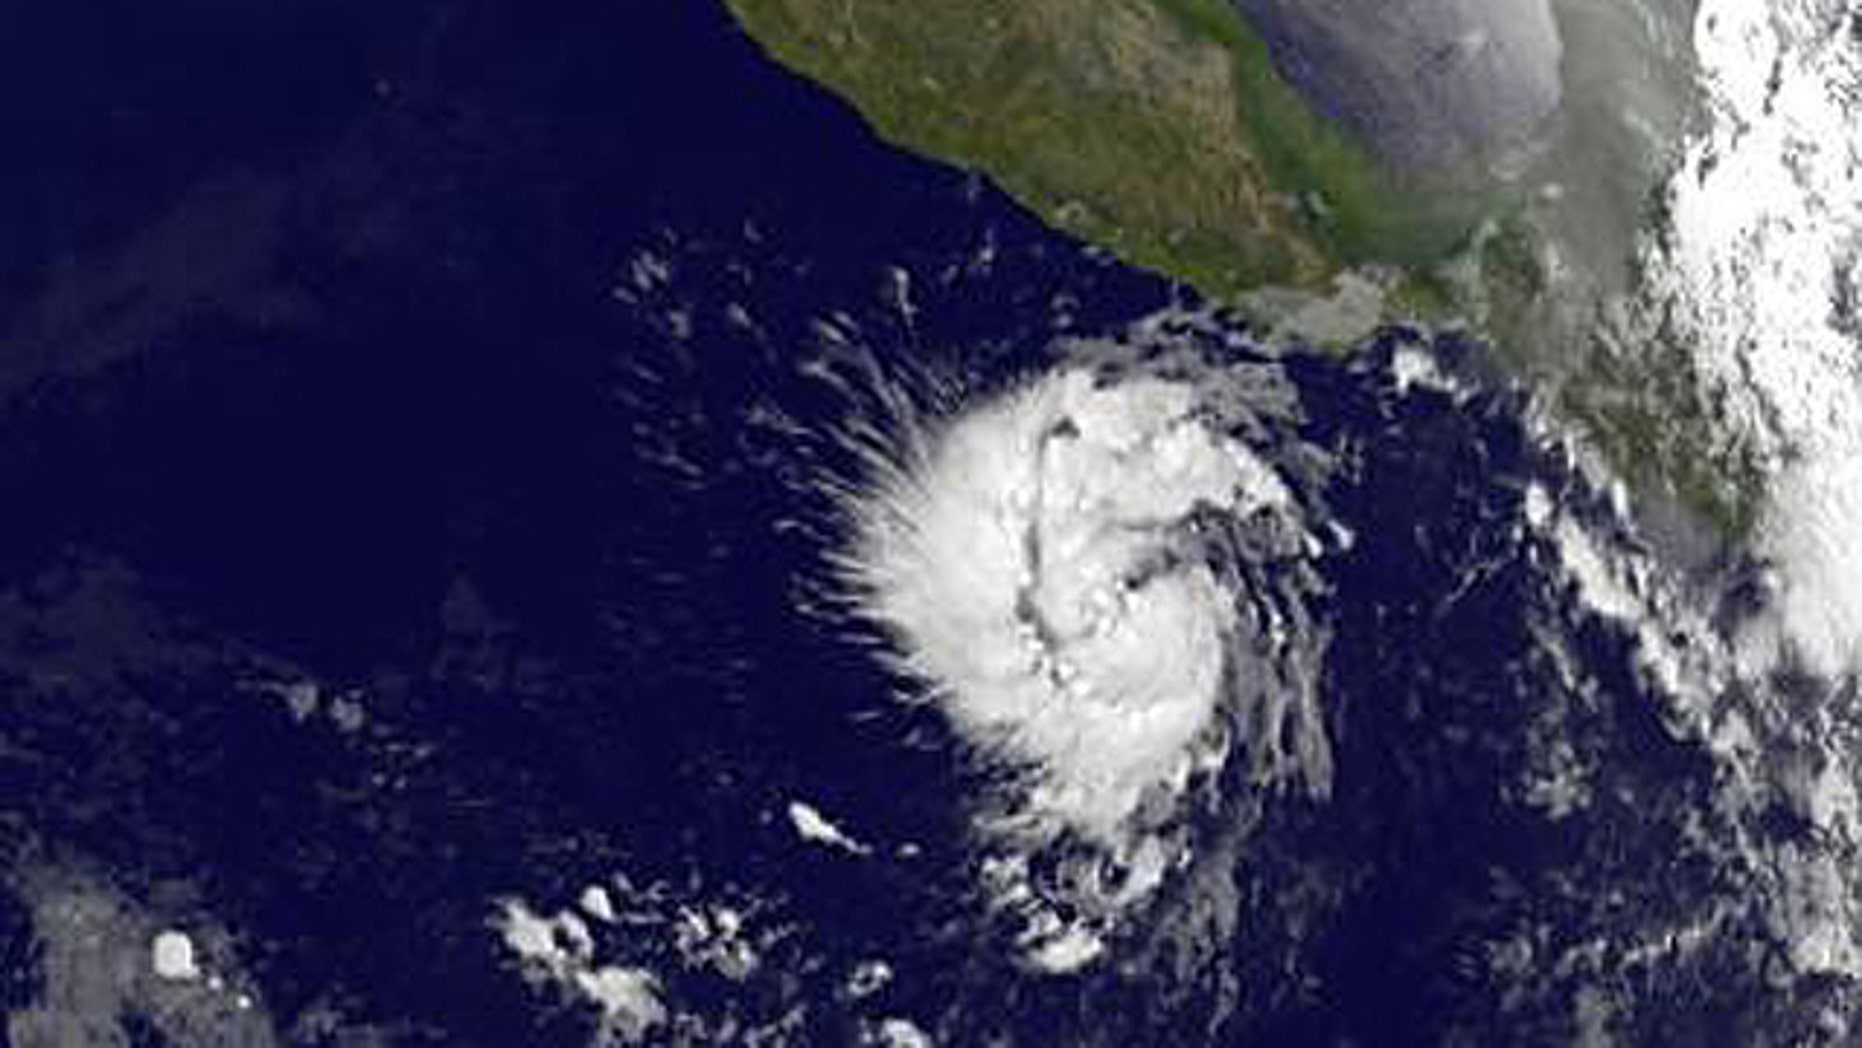 This infrared image of Tropical Storm Adrian was taken from the GOES-11 satellite on June 8 at 12:00 UTC (8:00 a.m. EDT) and shows a compact, rounded storm off the western Mexico coast. The image reveals that Adrian has some higher, stronger thunderstorms in the center that are casting shadows on lower clouds around them.